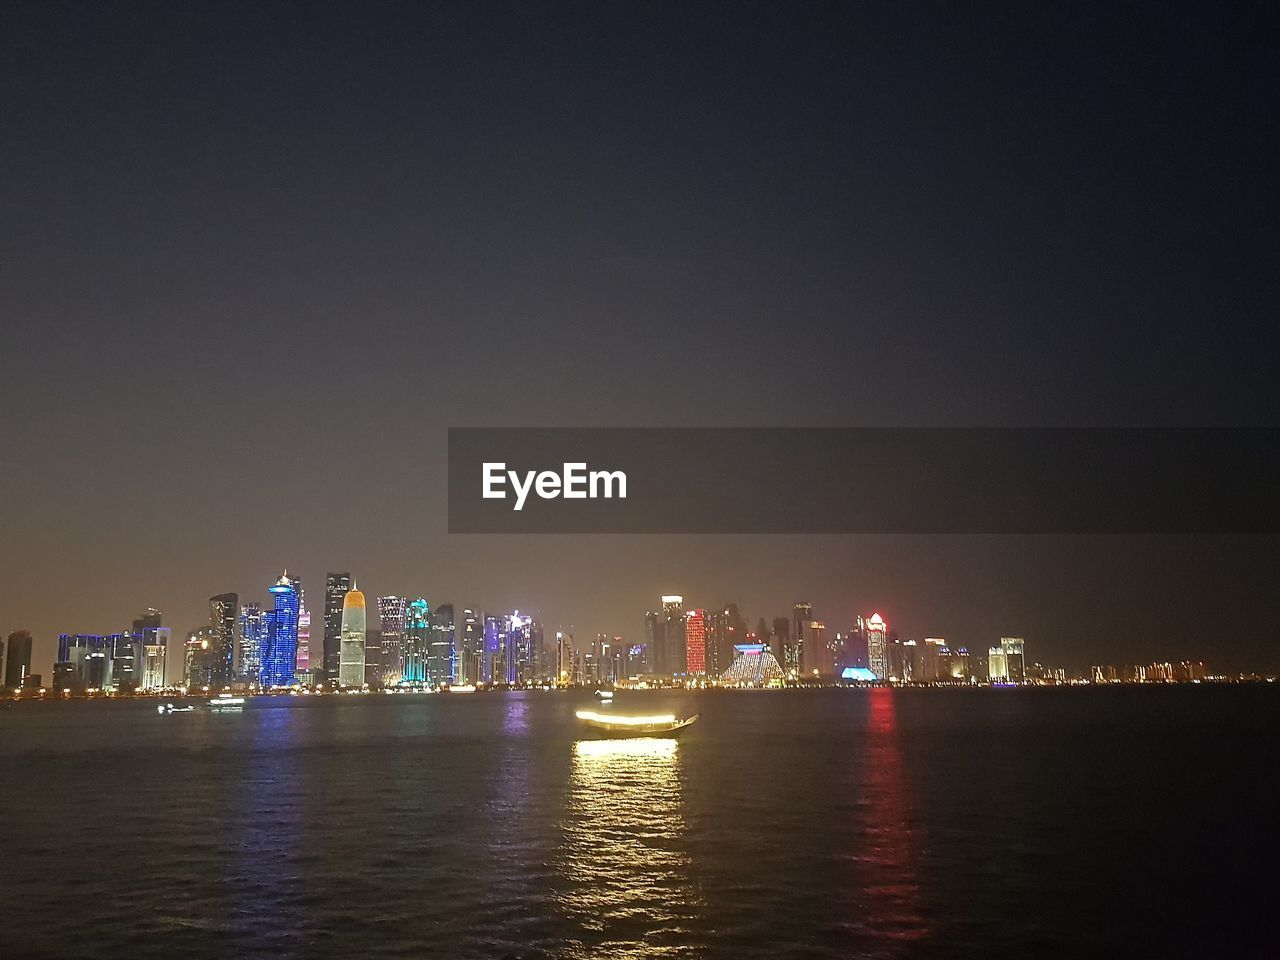 architecture, building exterior, night, built structure, waterfront, illuminated, water, sky, city, building, urban skyline, office building exterior, landscape, skyscraper, cityscape, no people, nature, sea, tall - high, outdoors, modern, light, financial district